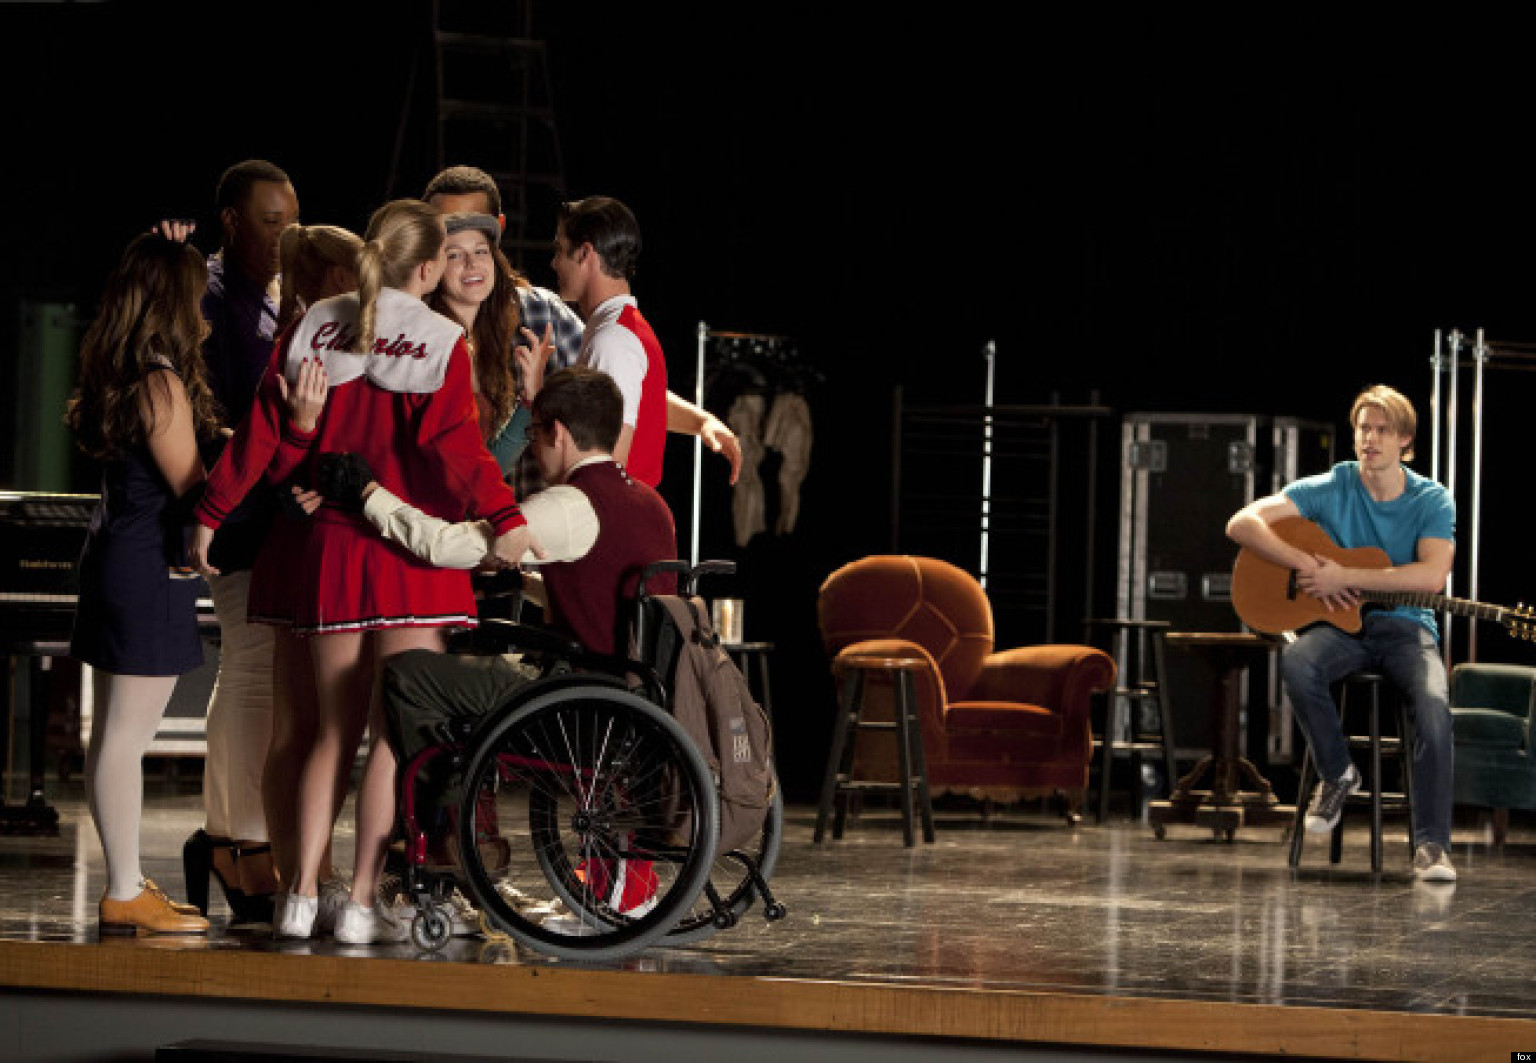 Last Nights Glee Episode Depicts School Shooting, Leaves Audiences Speechless forecasting